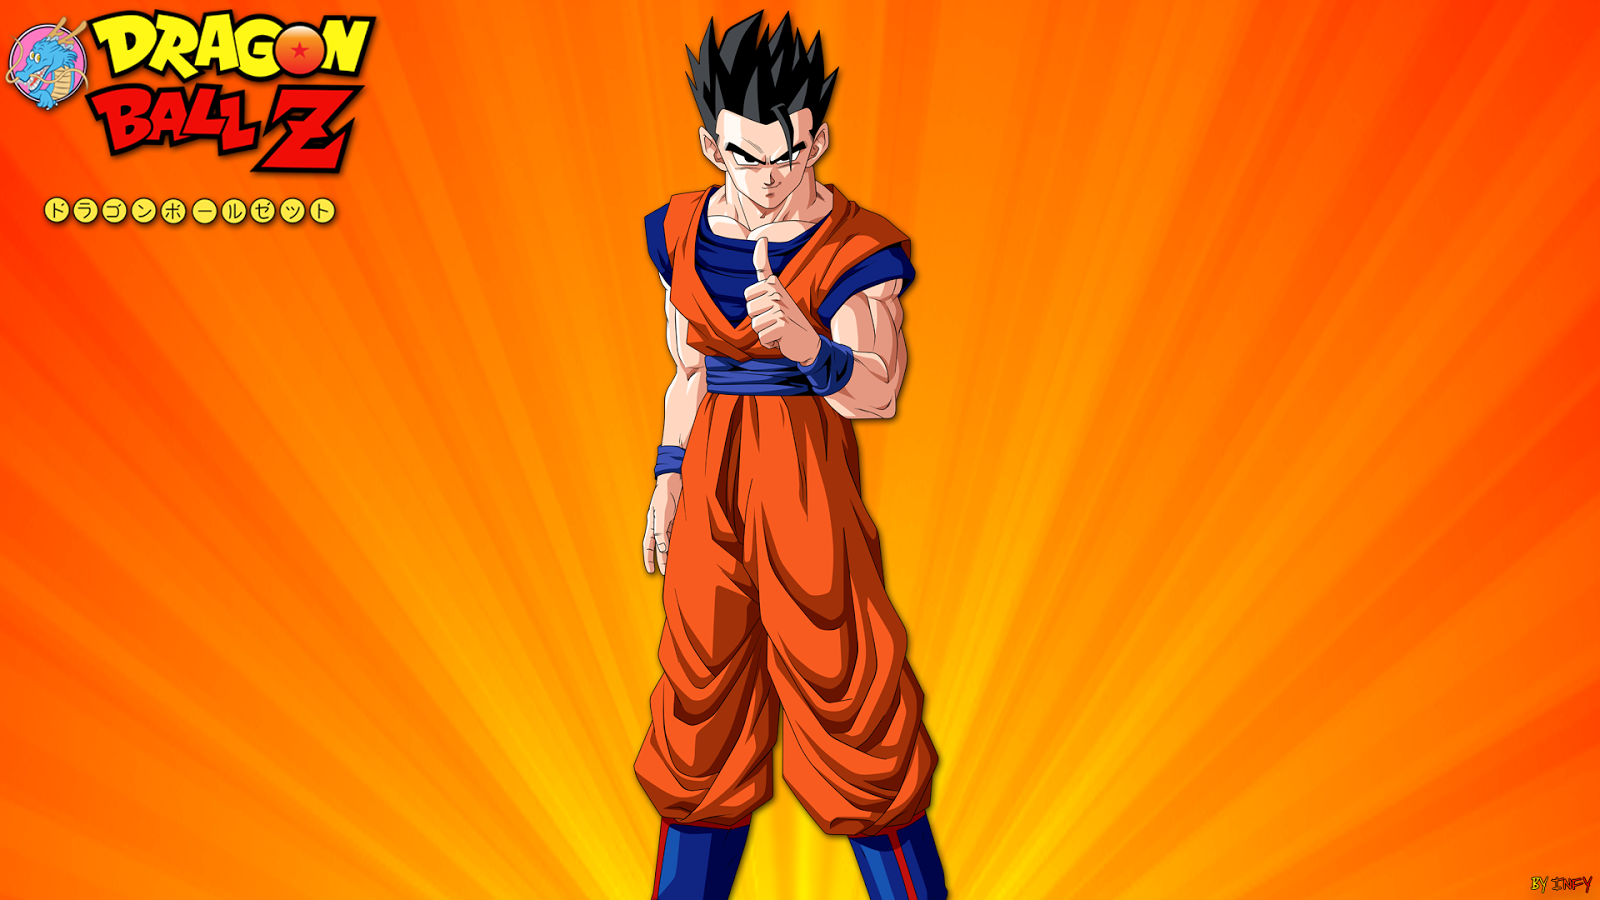 download ảnh nền dragon ball 3d